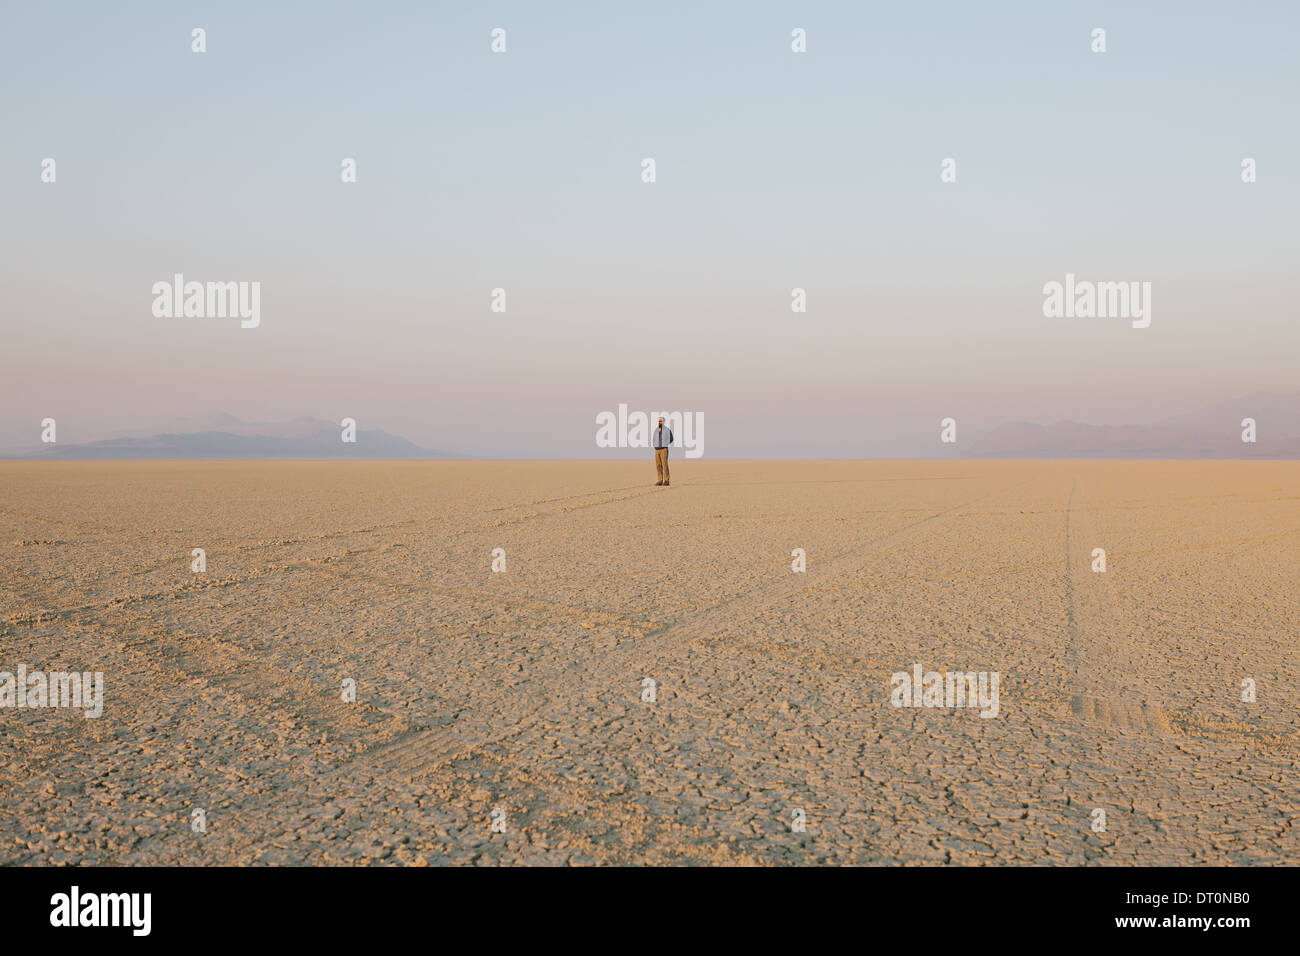 Black Rock Desert Nevada USA The figure of man in the empty desert landscape Stock Photo